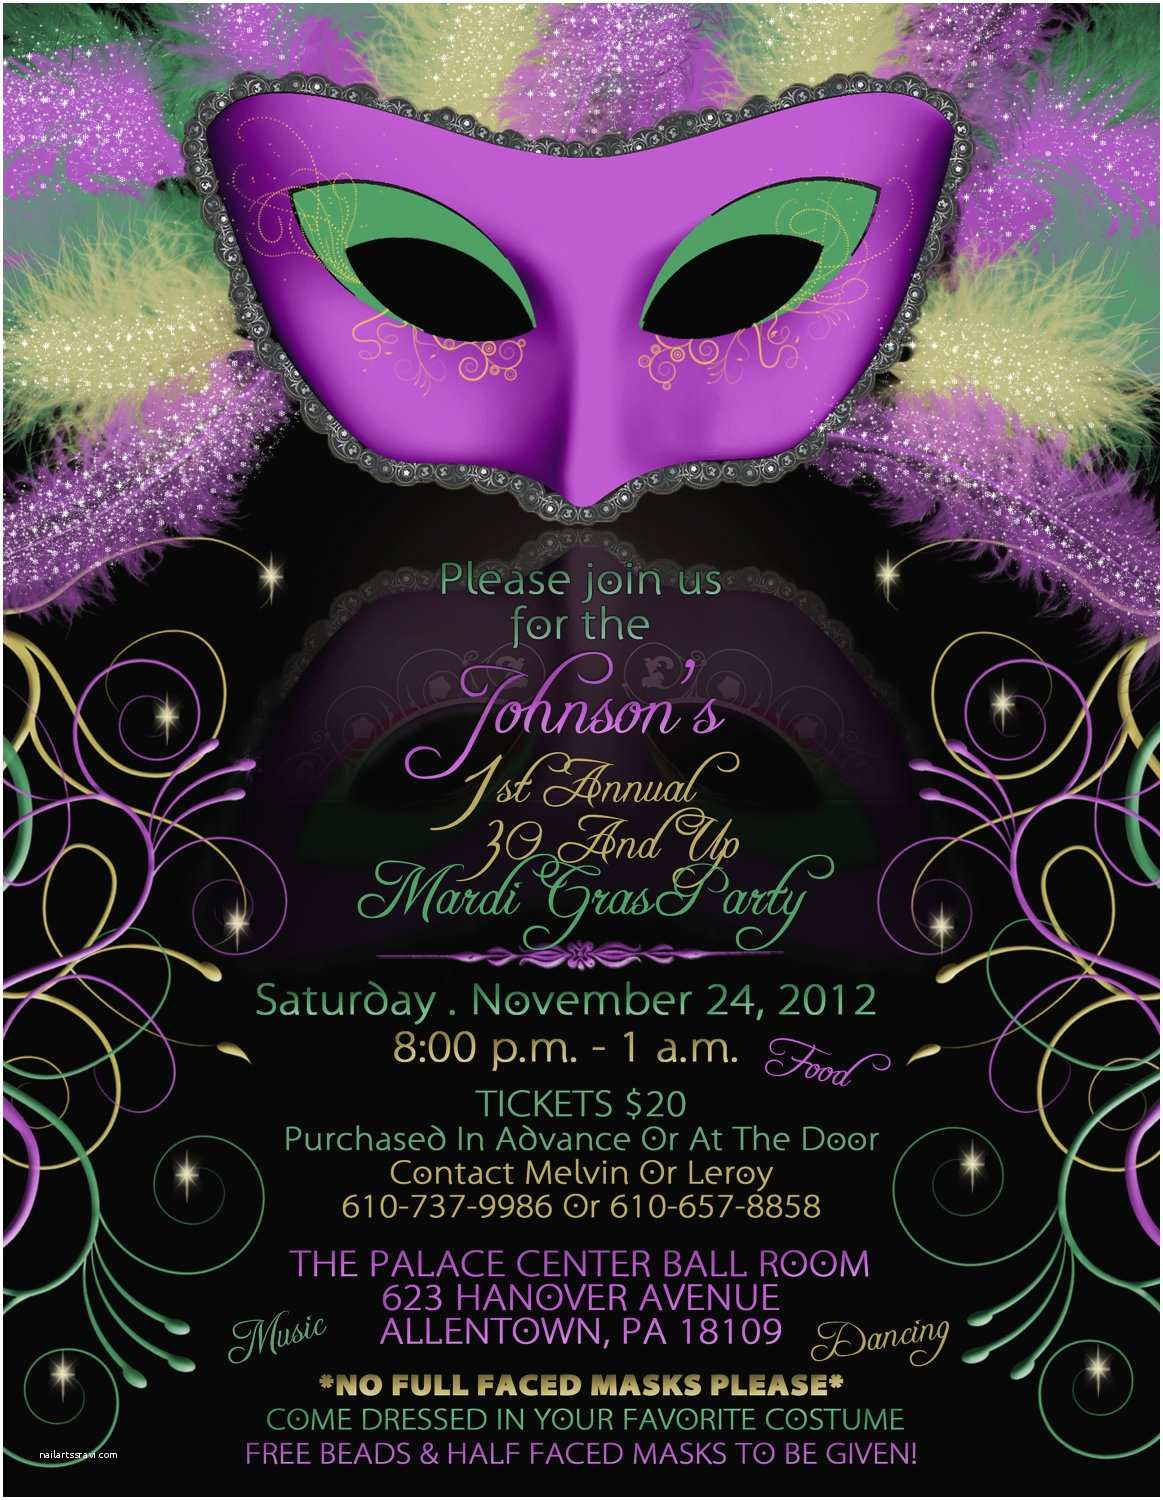 Masquerade Party Invitations Inspiring Mardi Gras and Masquerade Invitation Cards